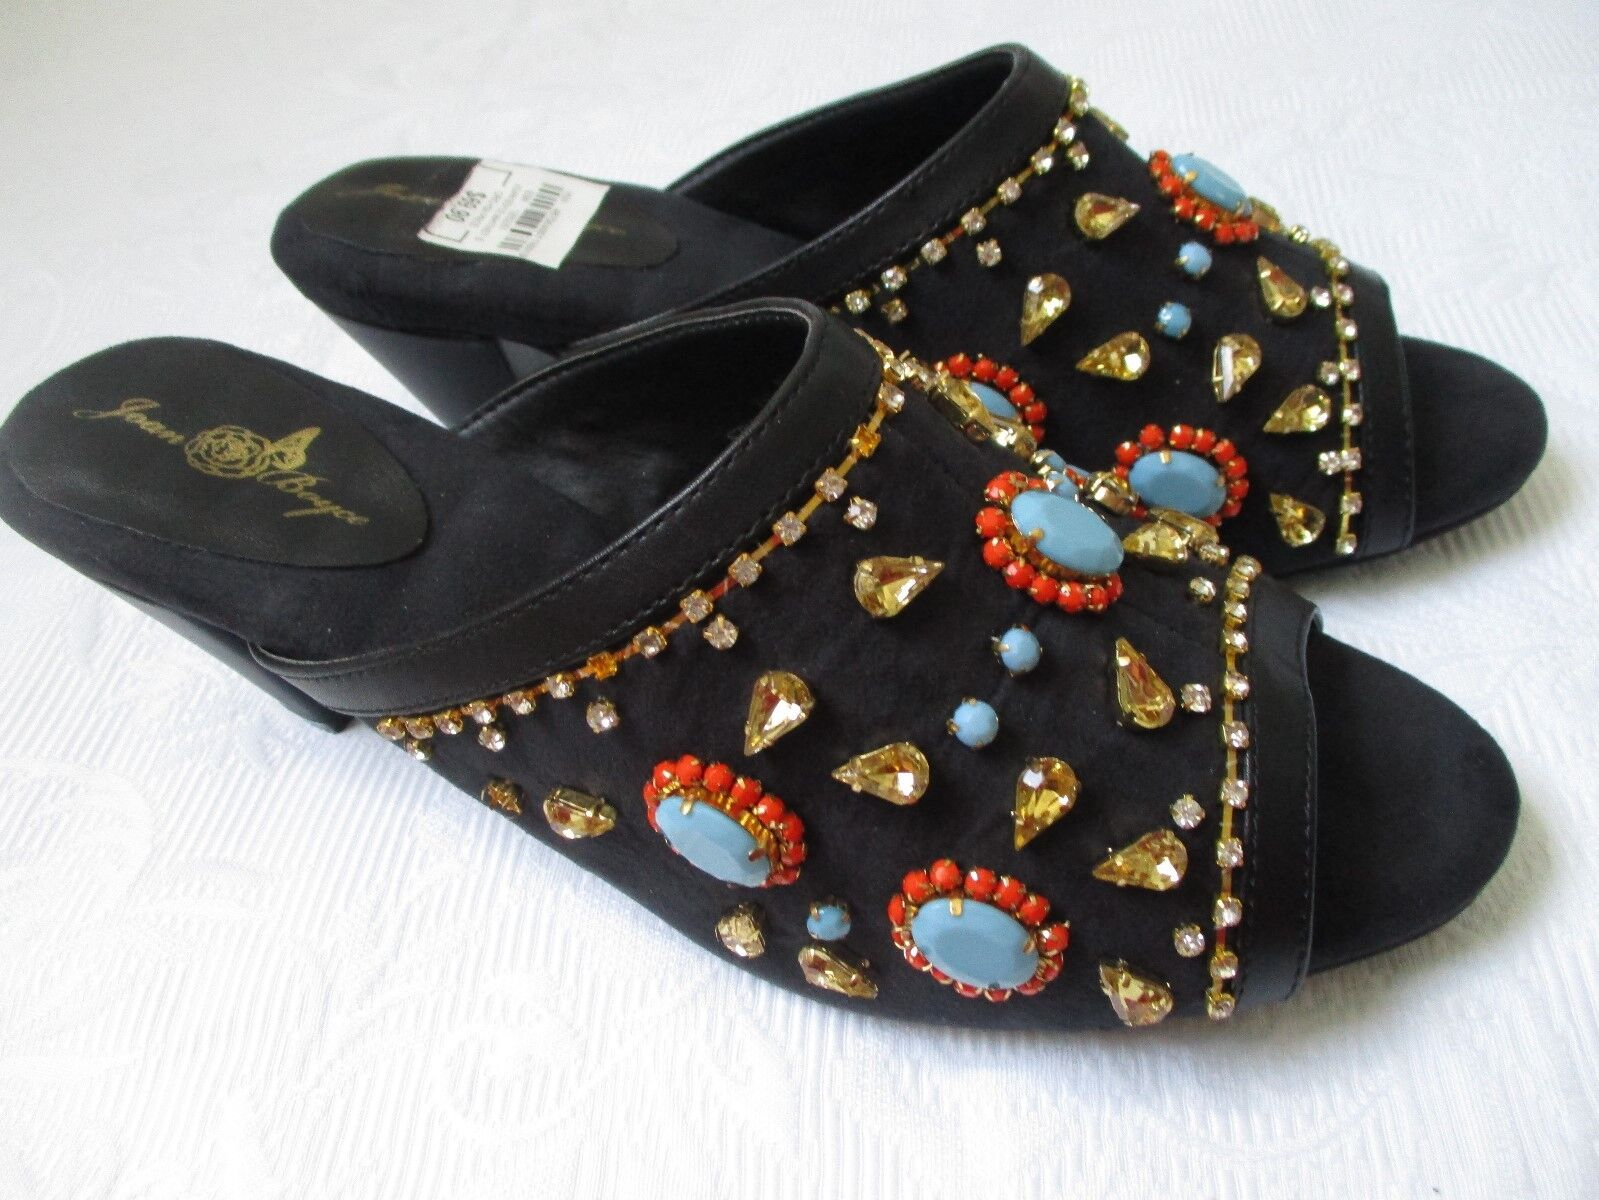 JOAN EMBELLISHED BOYCE WHITNEY BLACK EMBELLISHED JOAN OPEN TOE SLIDES Schuhe SIZE 9 1/2 M - NEW 8a6b10